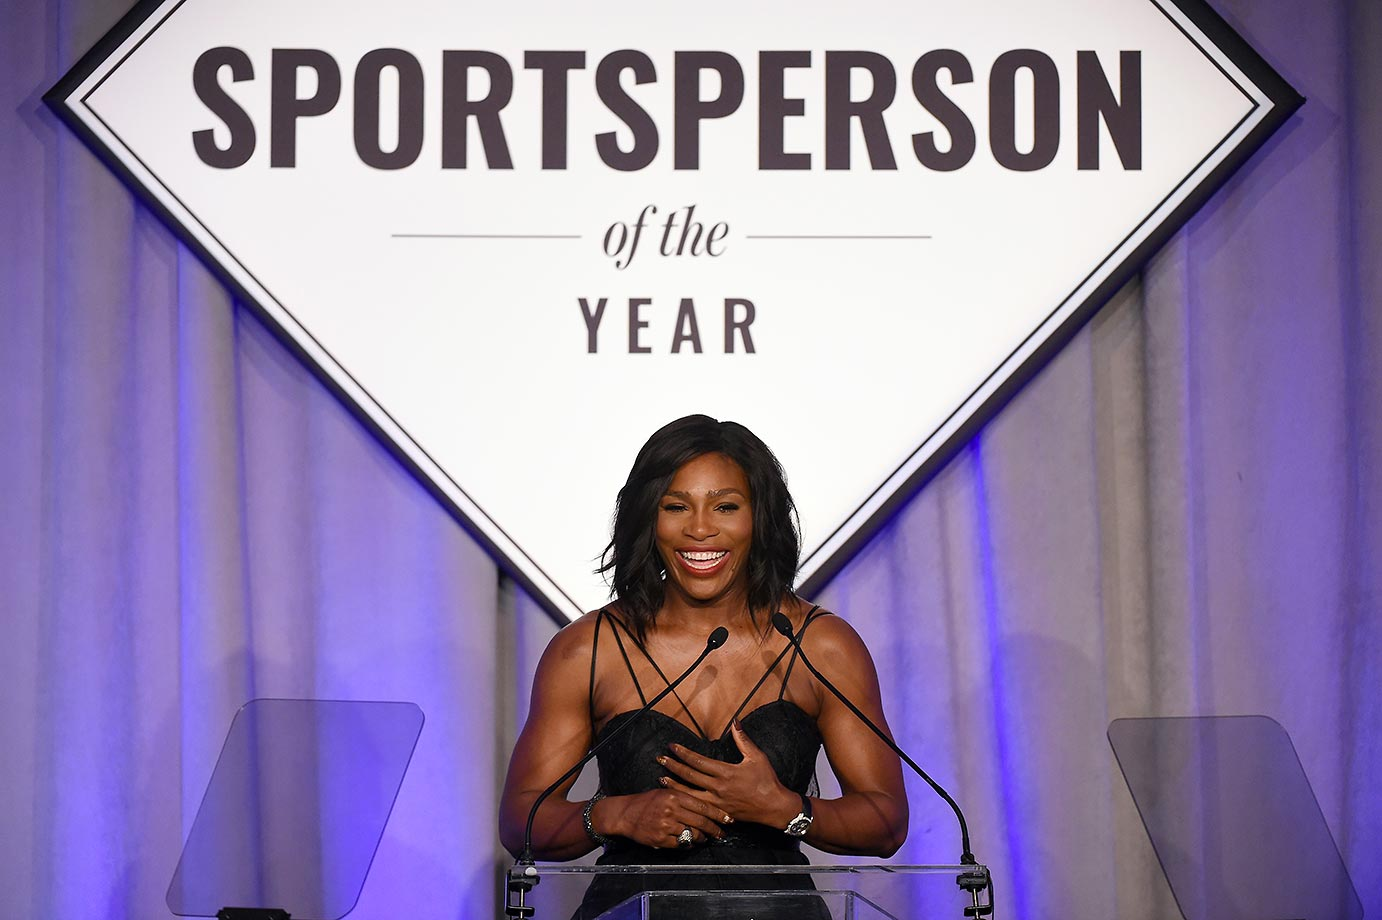 Serena Williams accepting the 2015 Sports Illustrated Sportsperson of the Year award.